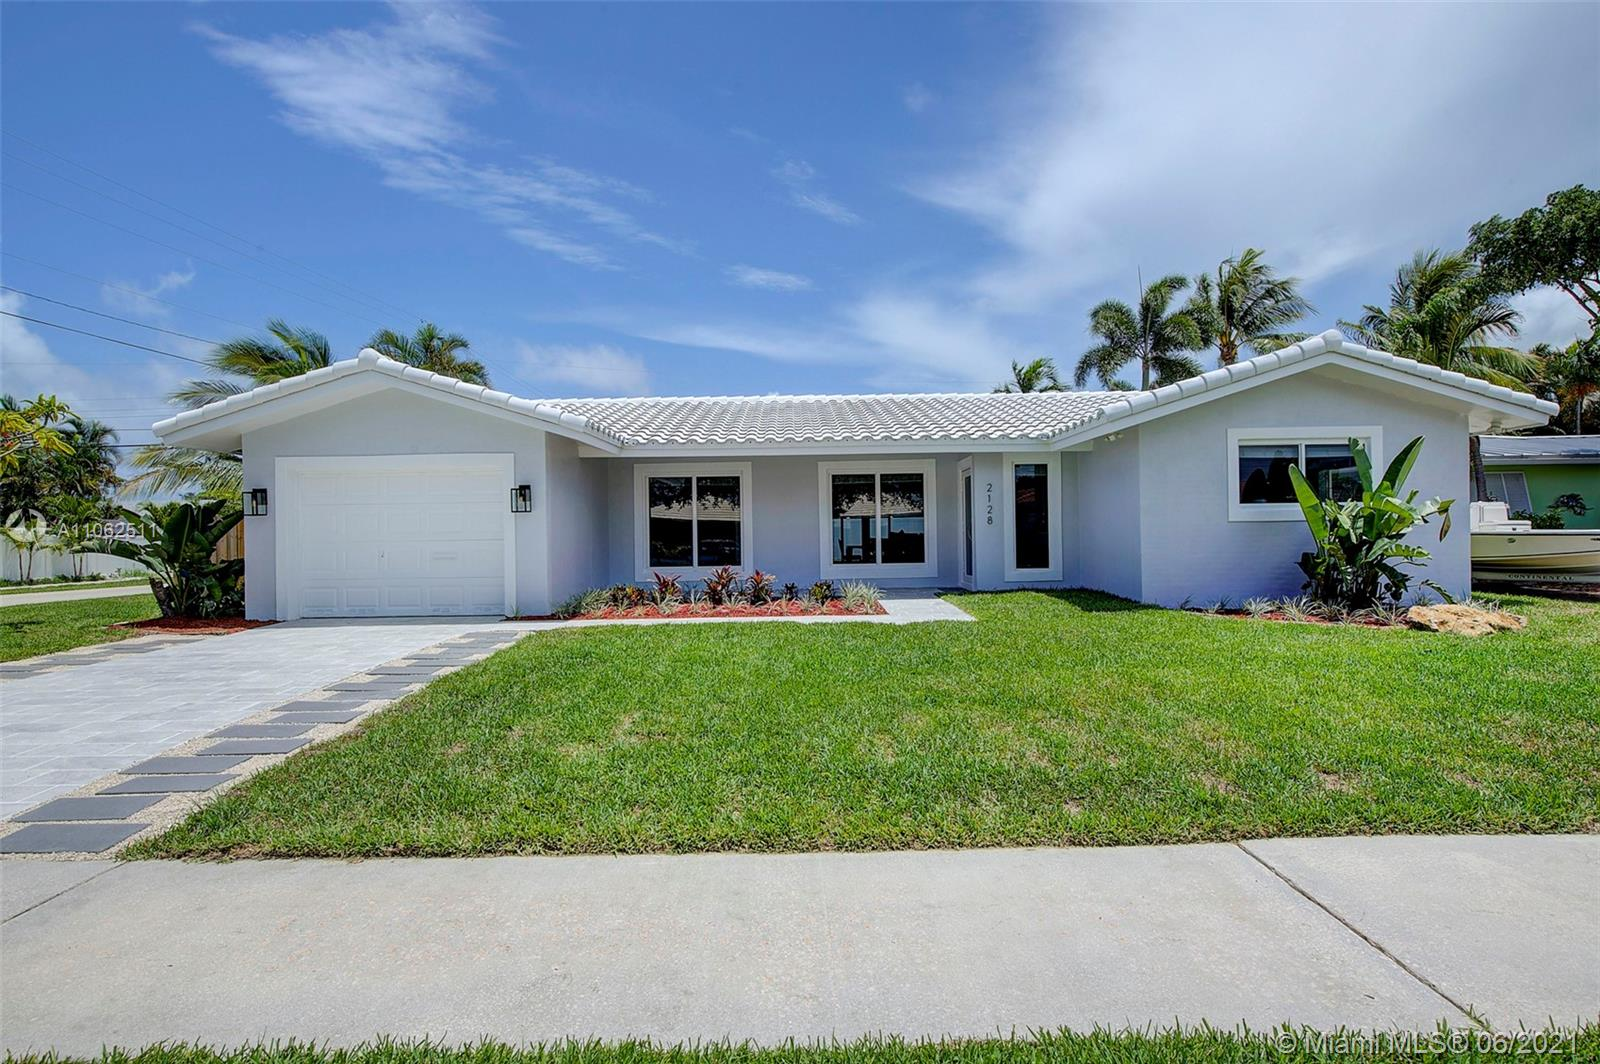 Imperial Point, 2128 NE 64th Street, Fort Lauderdale, Florida 33308